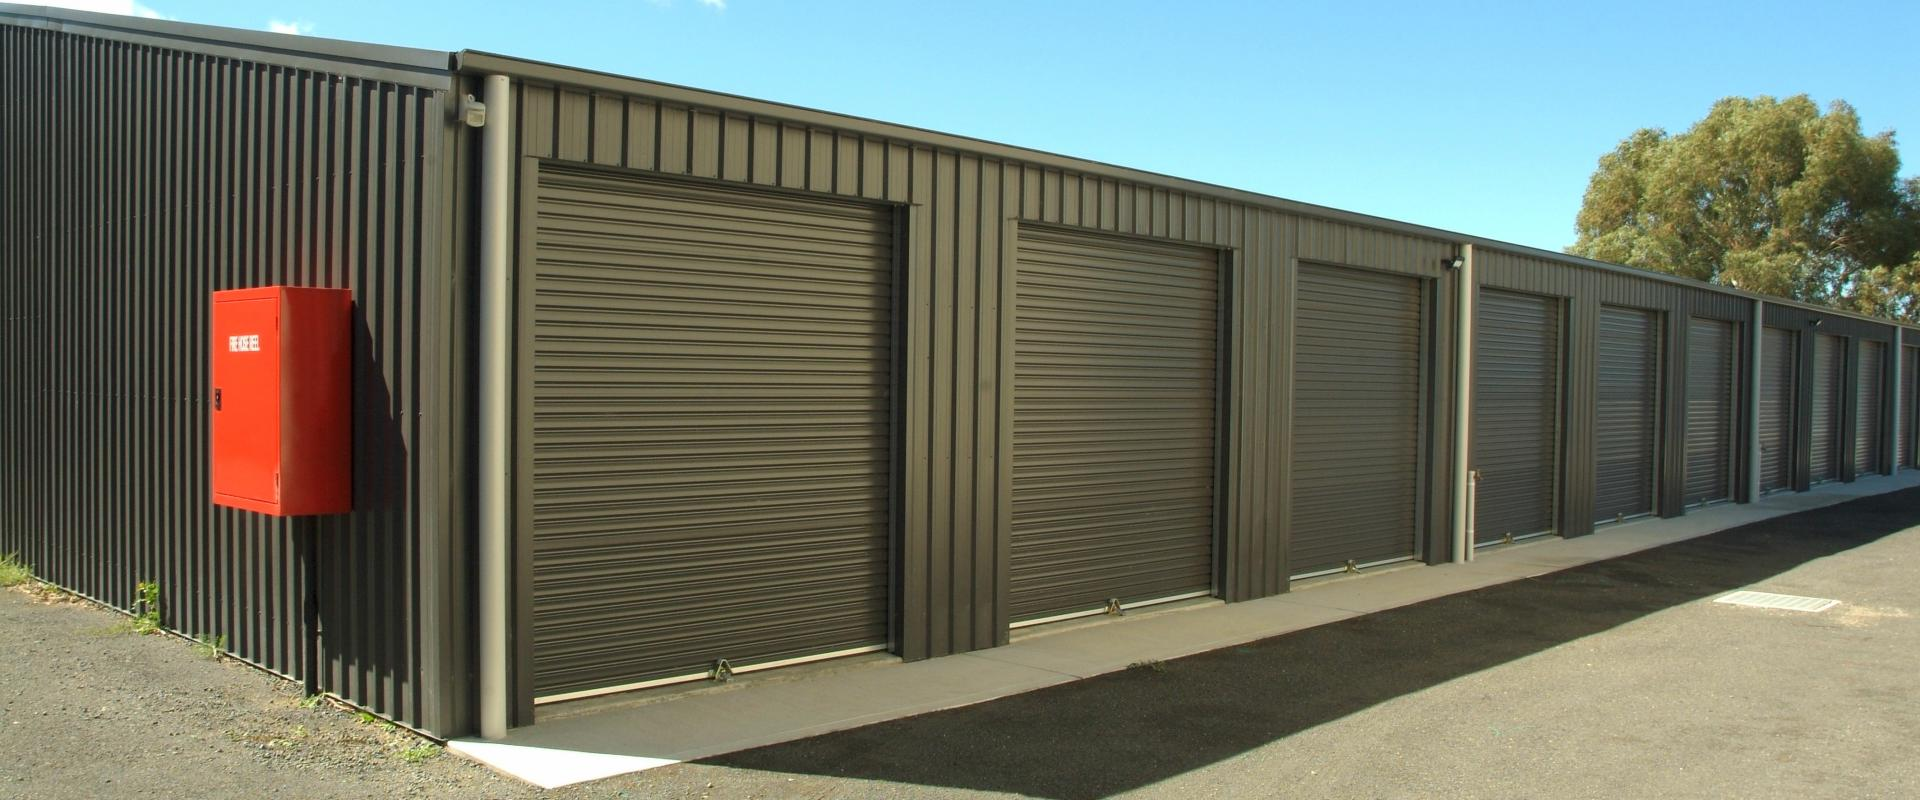 garages rent north storage to highbury garage harbour about facility hire ac portsmouth let northarbour for